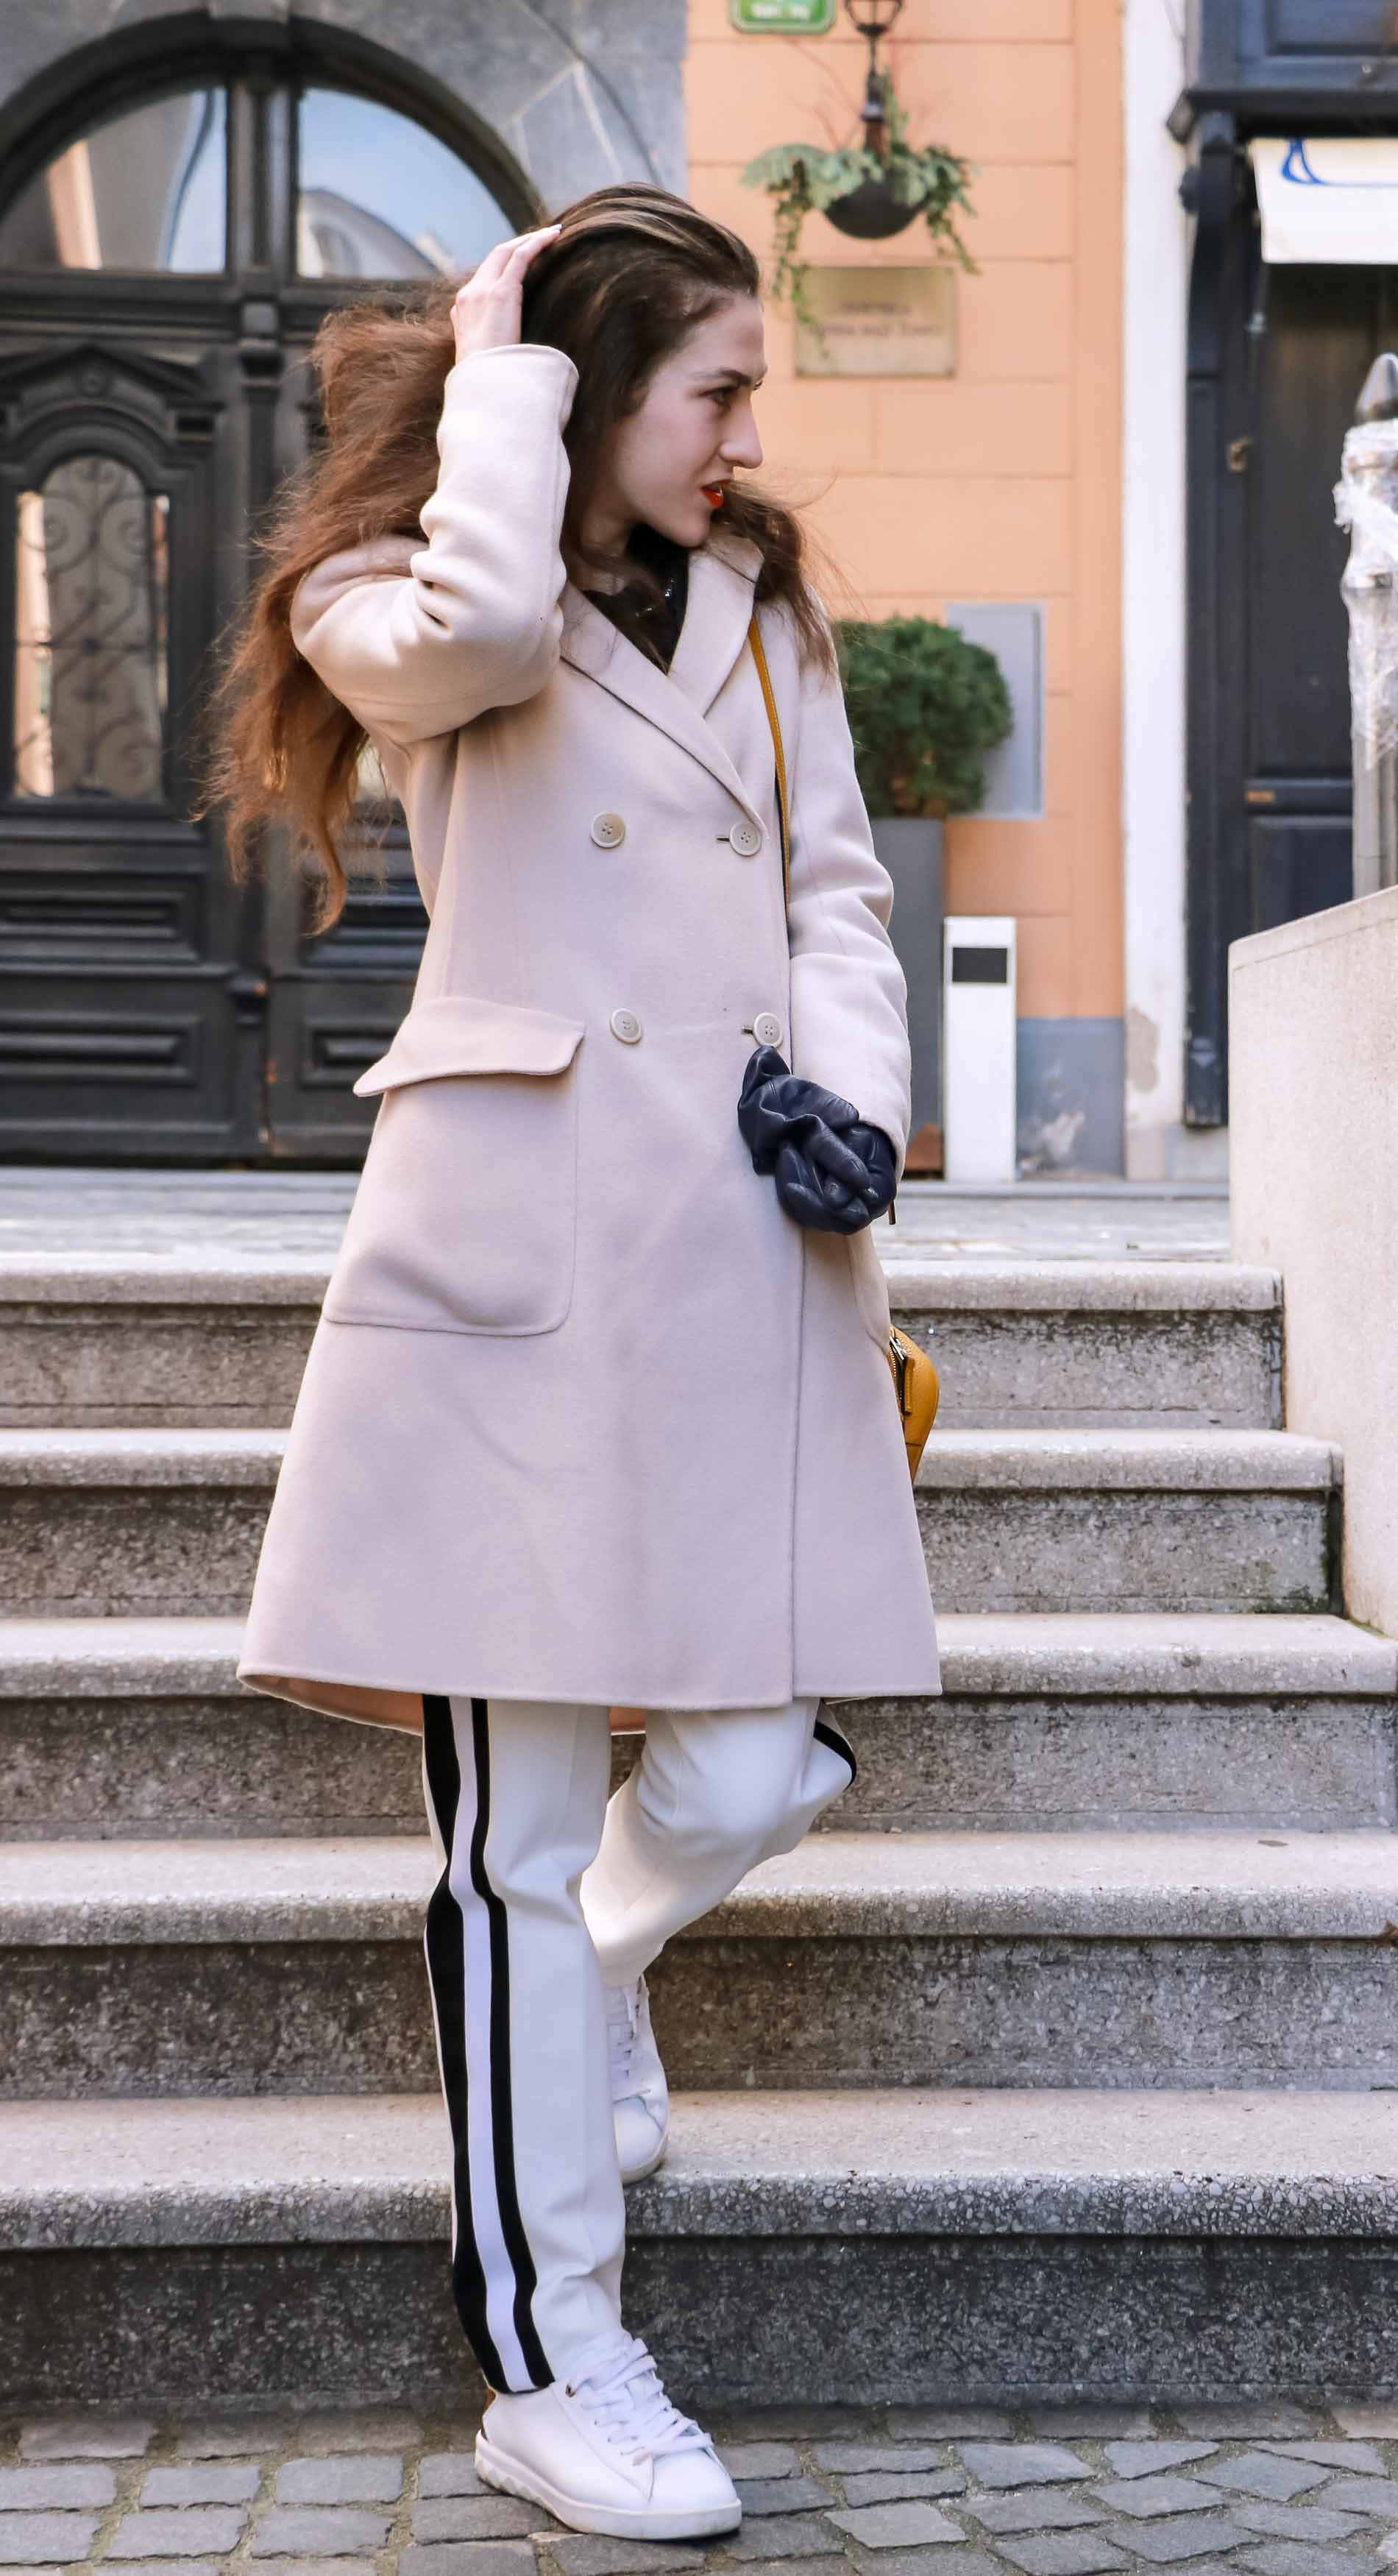 Fashion Blogger Veronika Lipar of Brunette from Wall Street dressed in white track pants with black side stripe from Escada, black silk blouse, off-white pastel double breasted coat from Weekend Max Mara, white leather sneakers from Diesel, yellow shoulder bag from Escada while standing on the stairs in Ljubljana